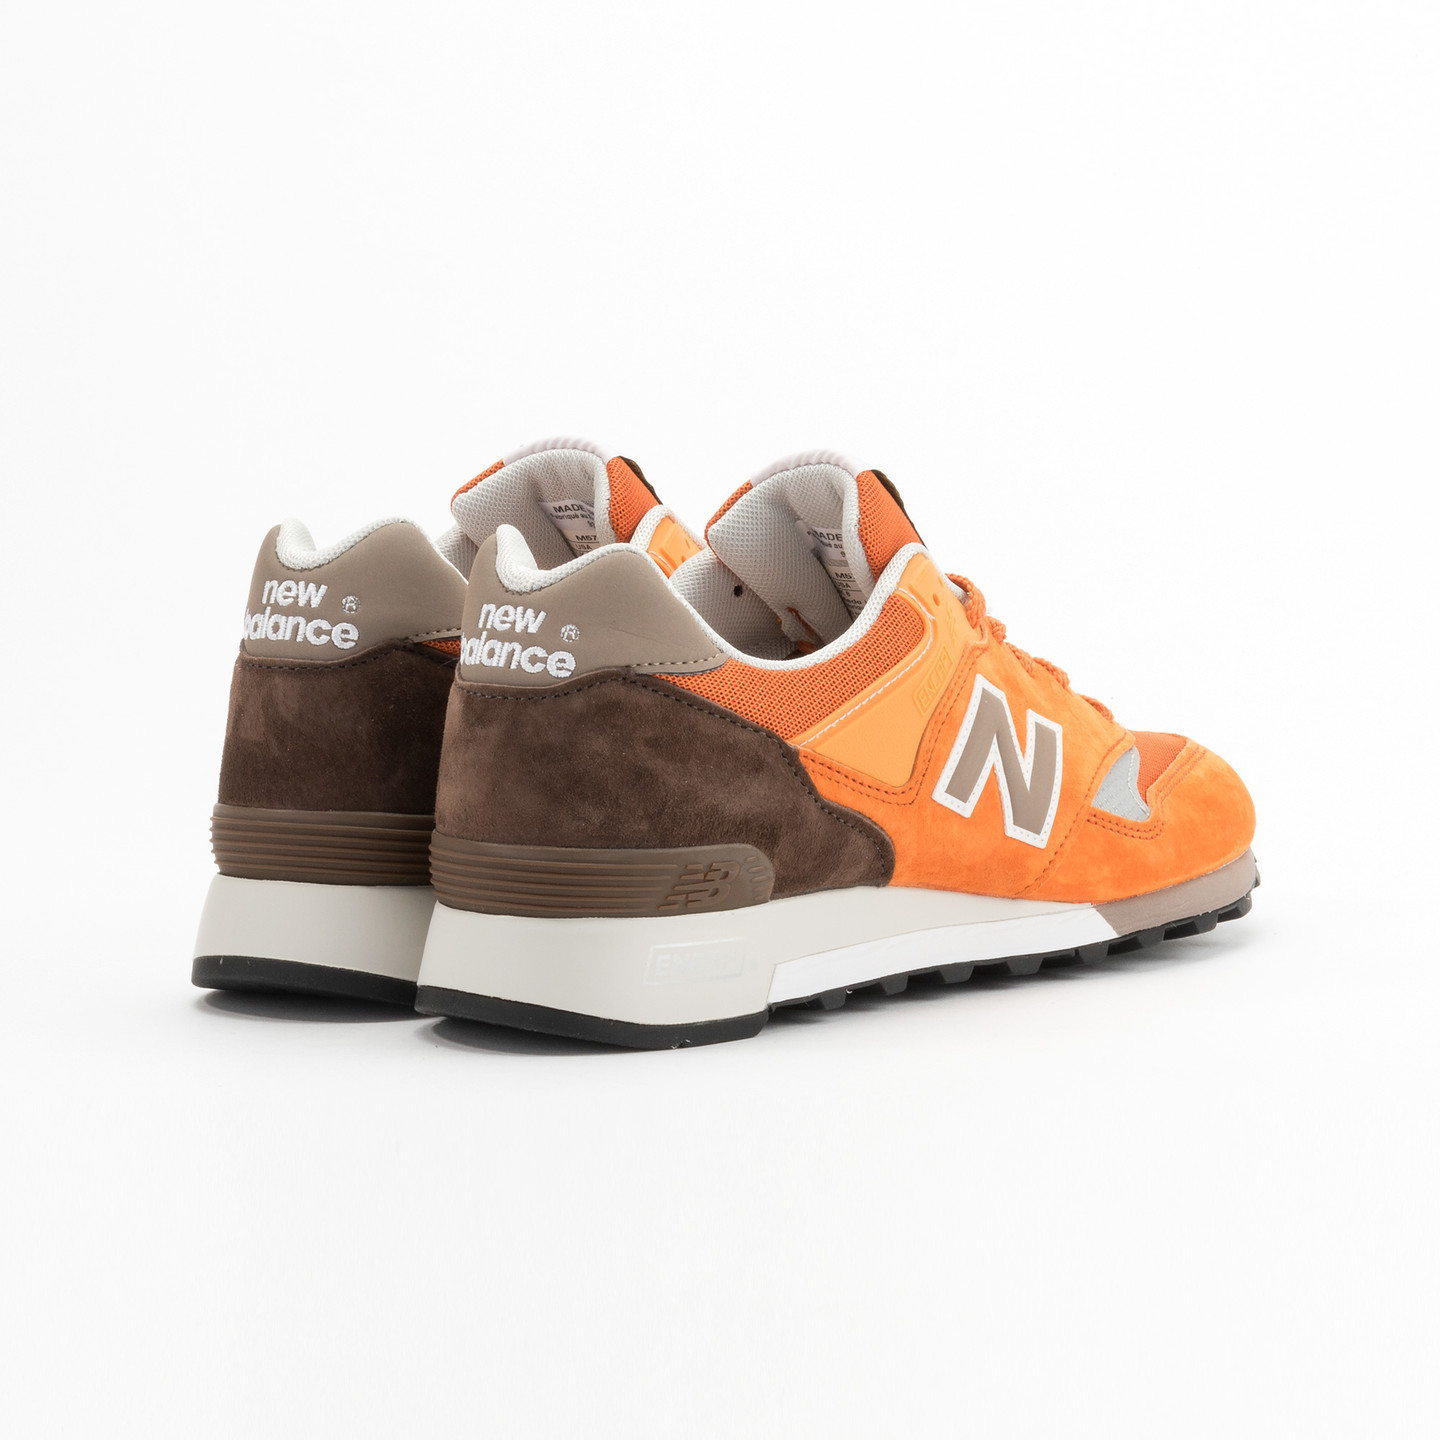 New Balance M577 ETO - Made in England Orange / Brown M577ETO-43